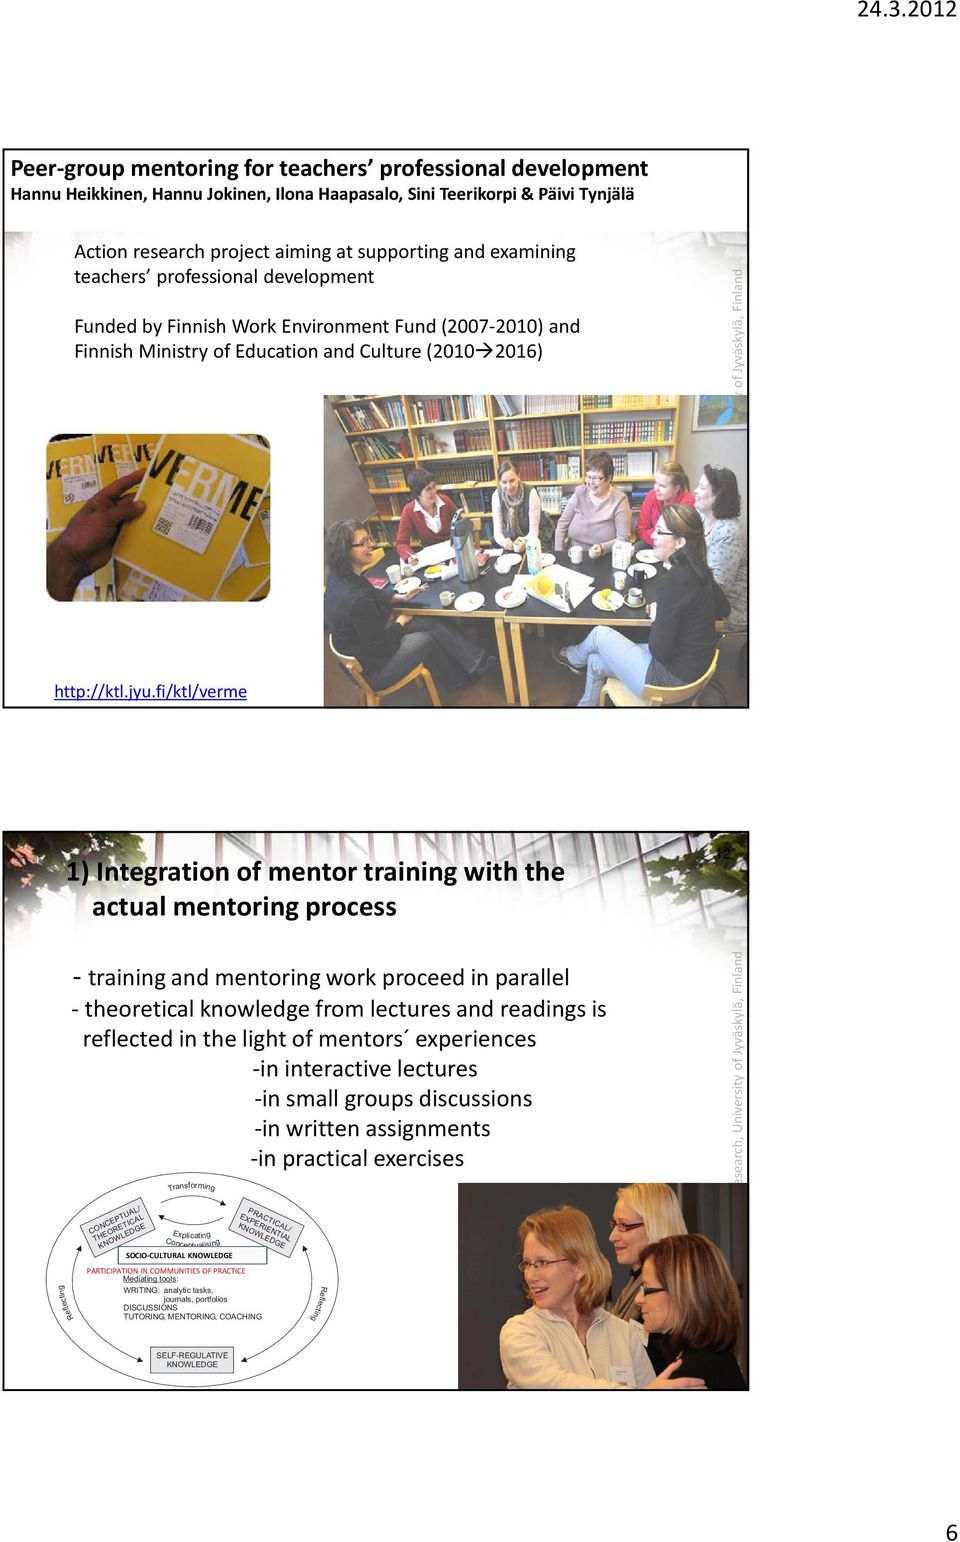 fi/ktl/verme 1) Integrationof mentortrainingwith the actual mentoring process 12 - training and mentoring work proceed in parallel - theoreticalknowledgefromlecturesand readingsis reflected in the